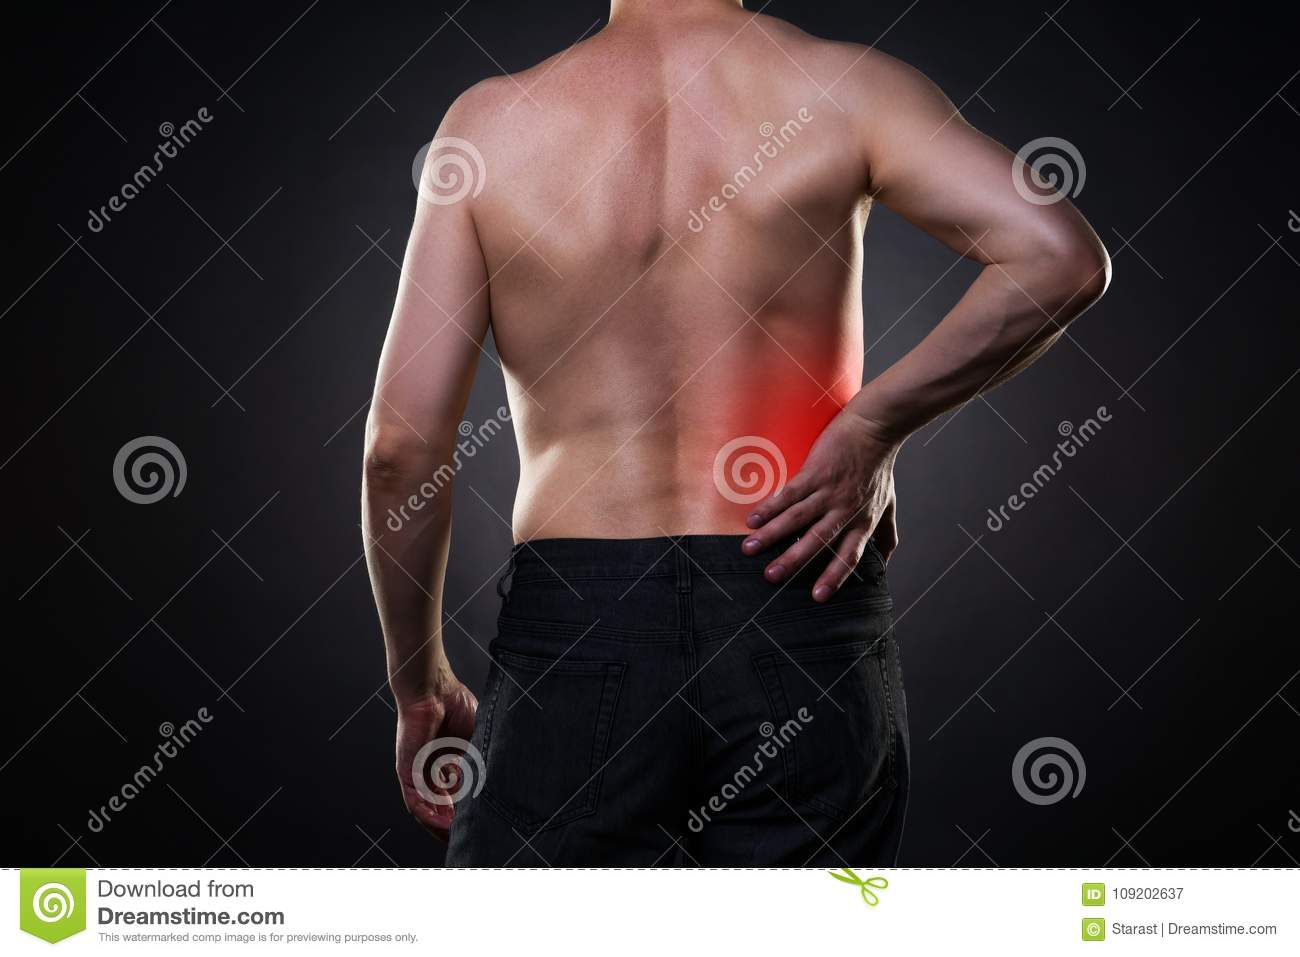 Back Pain Kidney Inflammation Ache In Man S Body Stock Image Image Of Kidney Infection 109202637